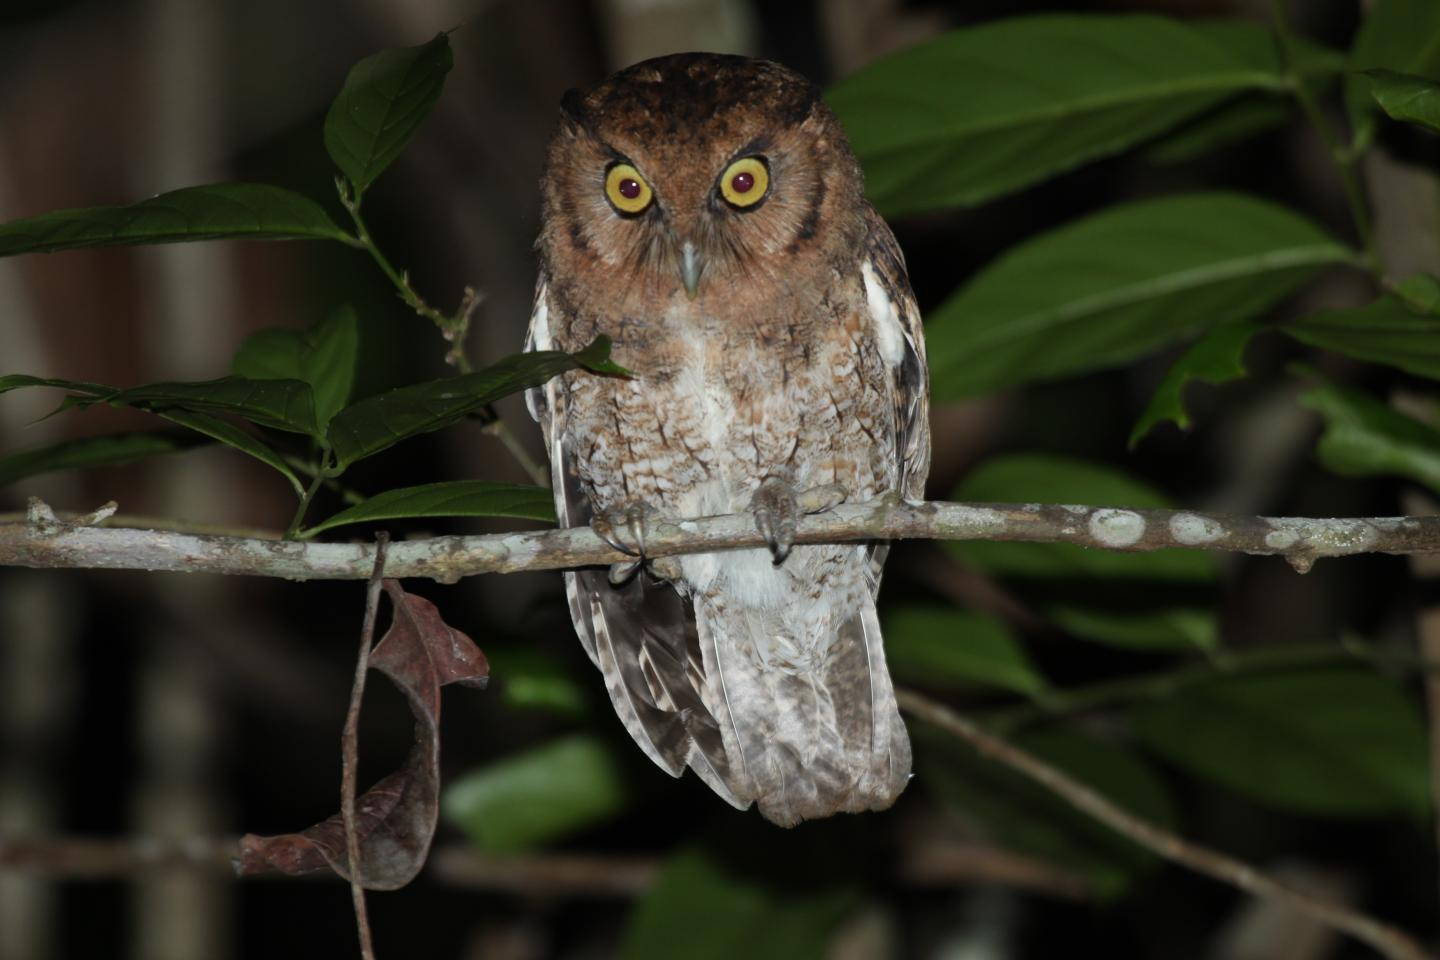 The newly described Alagoas screech owl (Megascops alagoensis) from Brazil's Atlantic forest is thought to be critically endangered. Image by Gustavo Malacco.